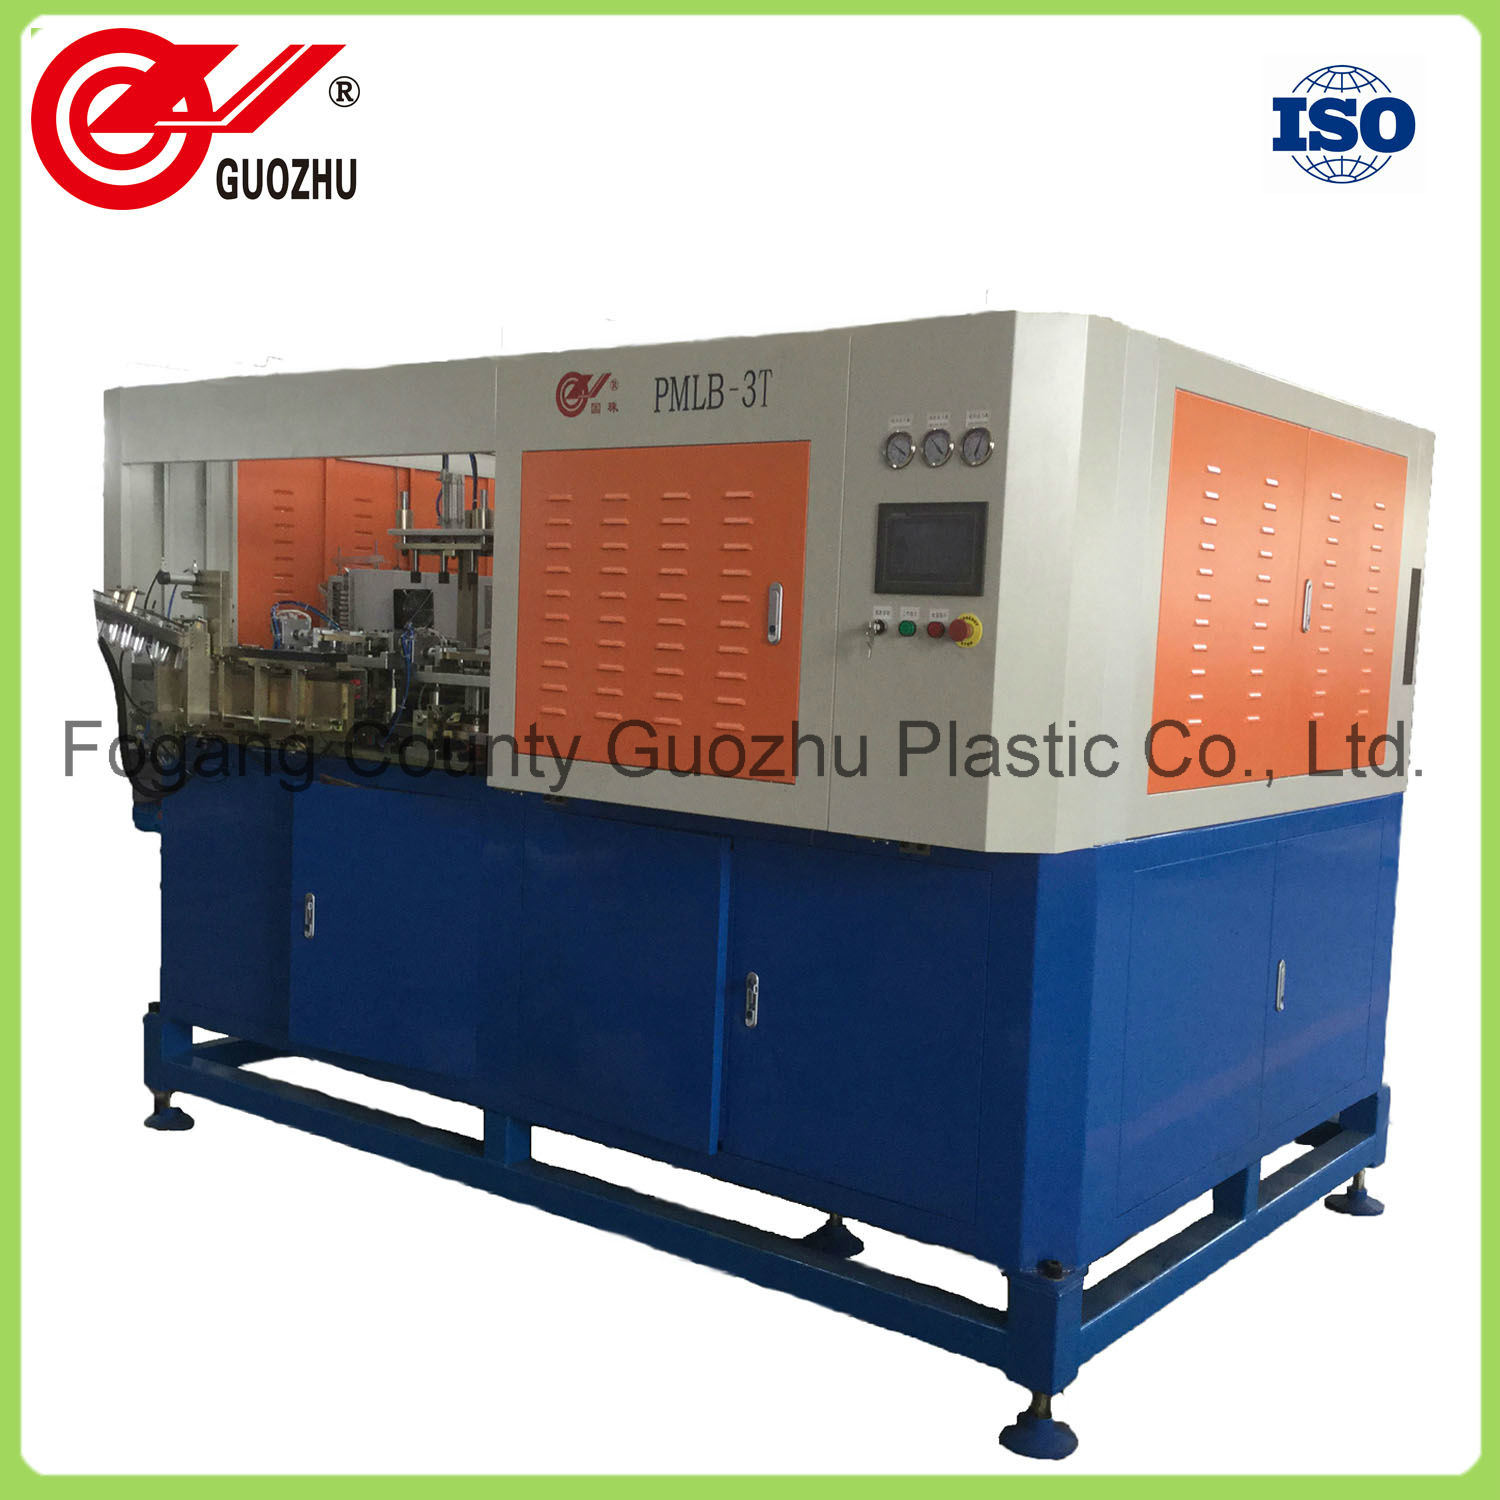 Pmlb-03t Automatic Continuous Heating Linear Bottle Blowing Machine